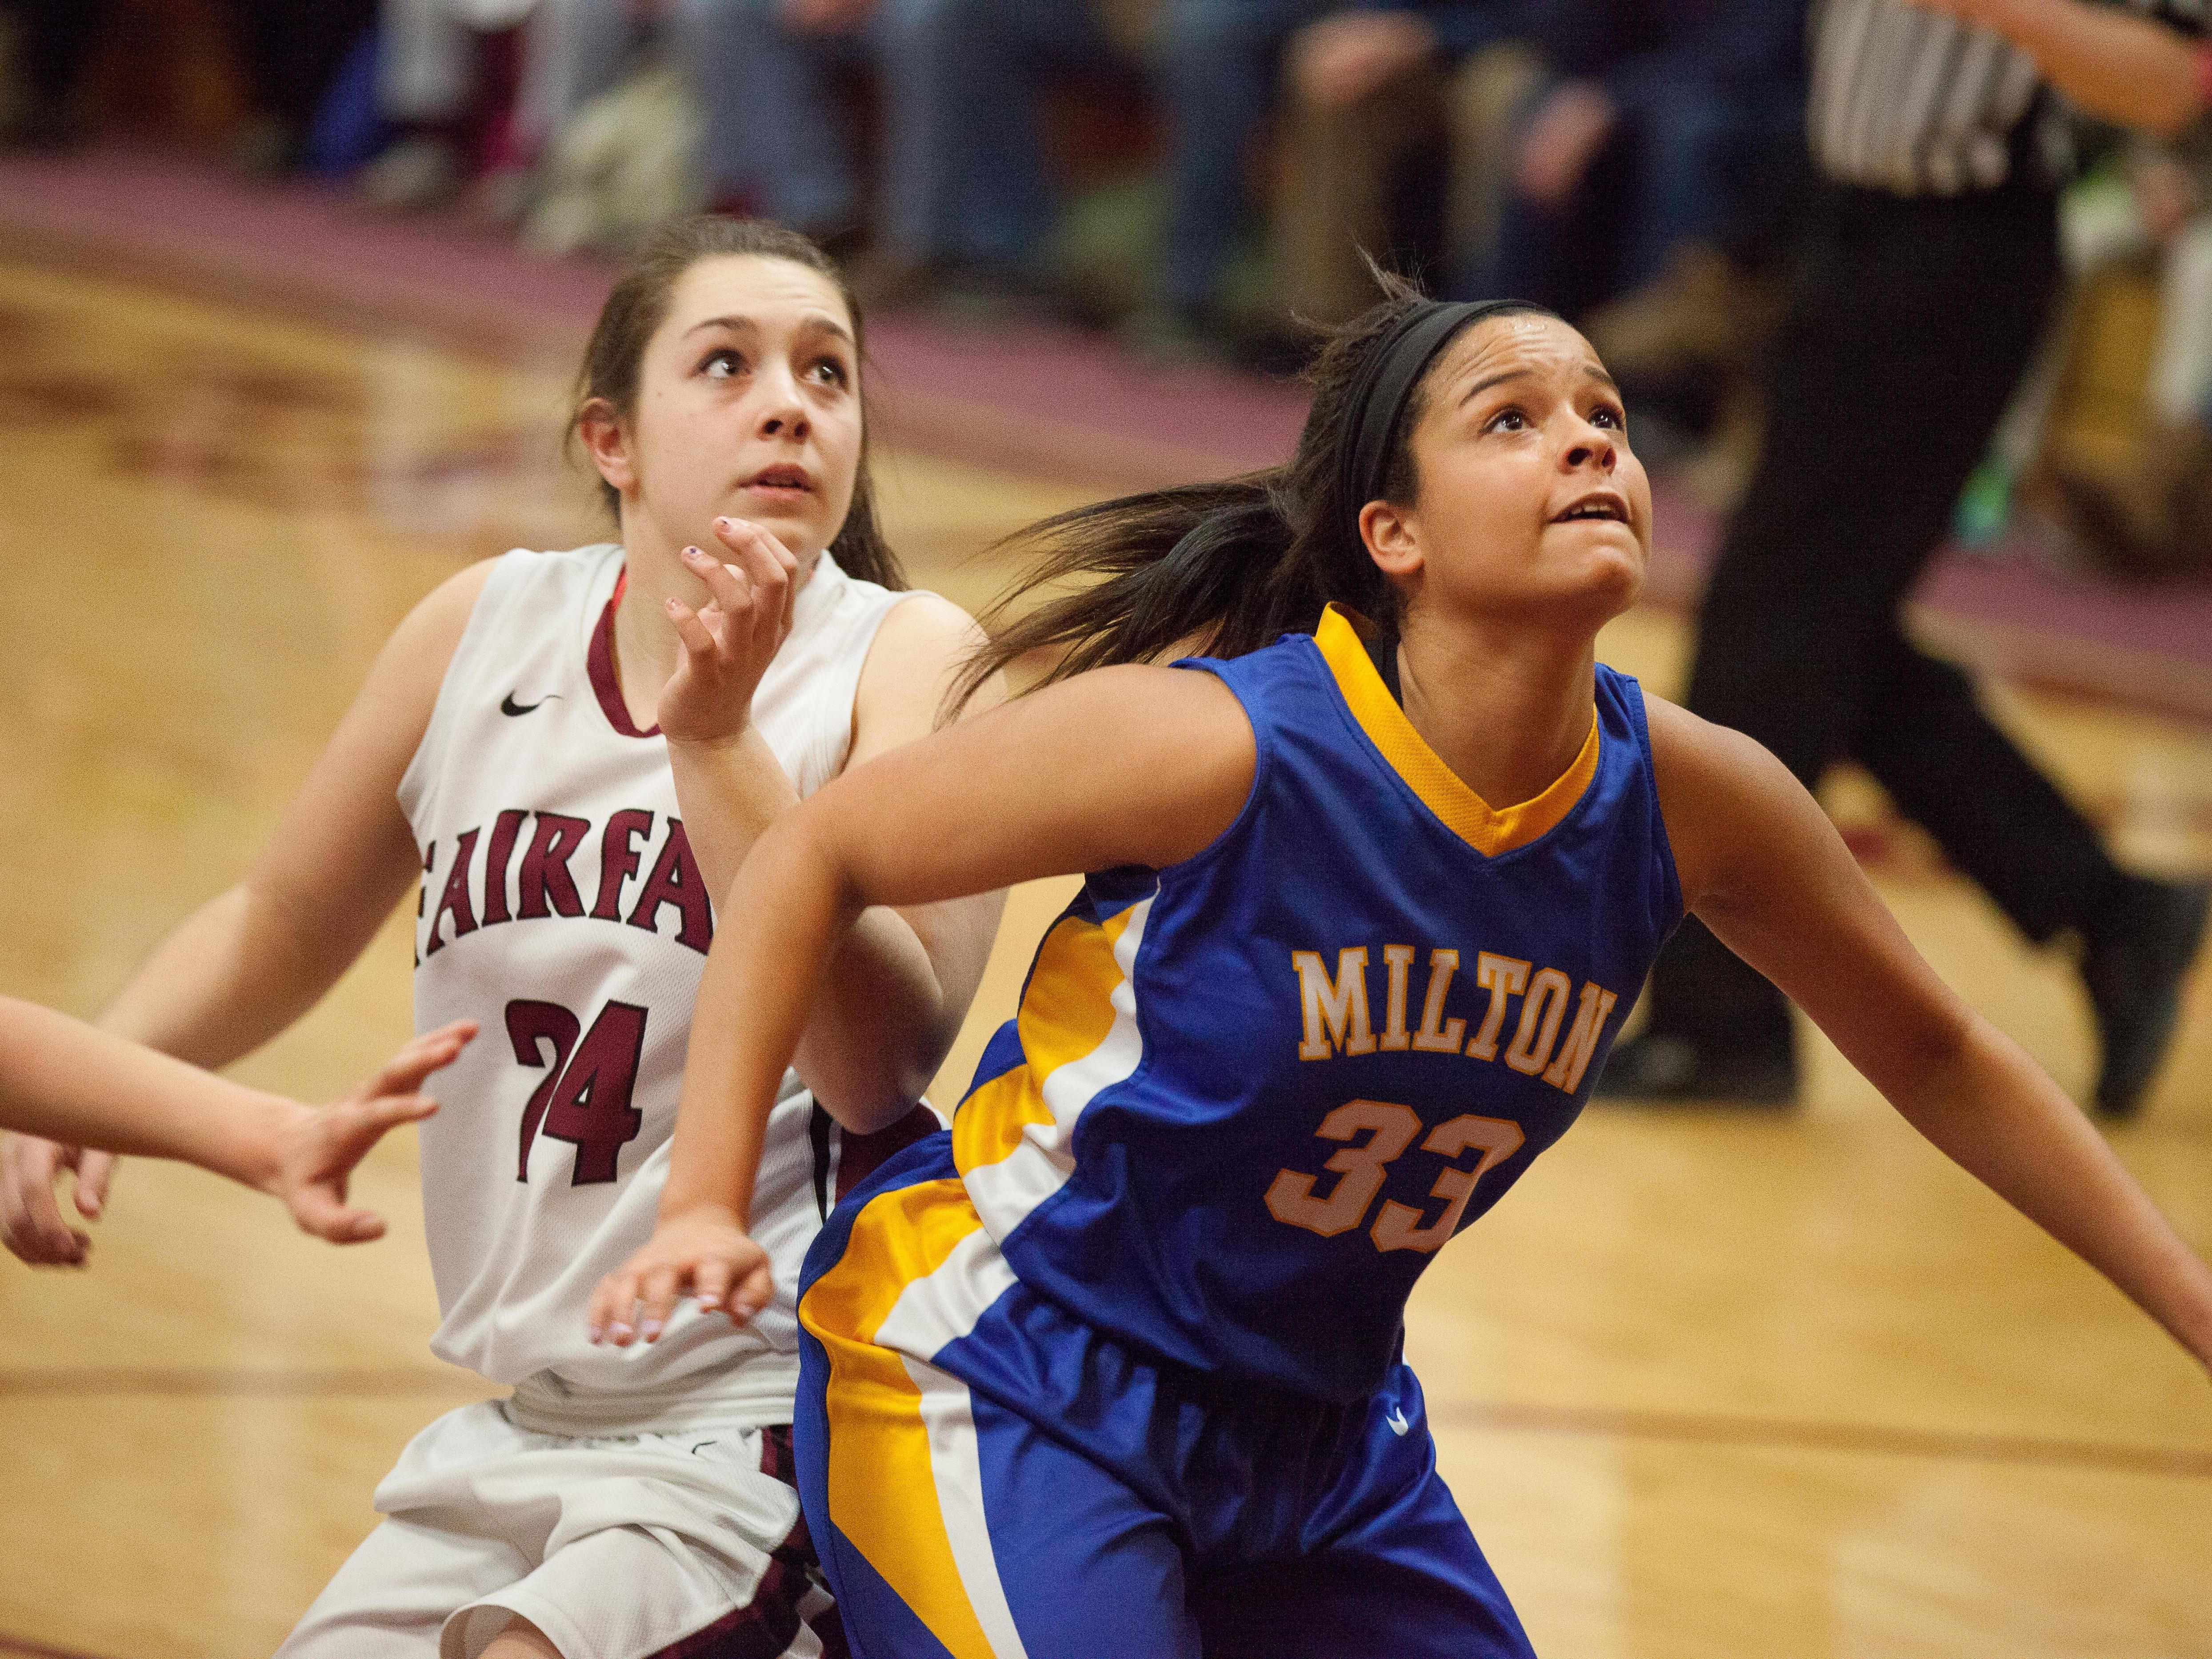 Selena Patterson, who scored 21 points in the season opener, should be one of Milton's top scorers again this winter.